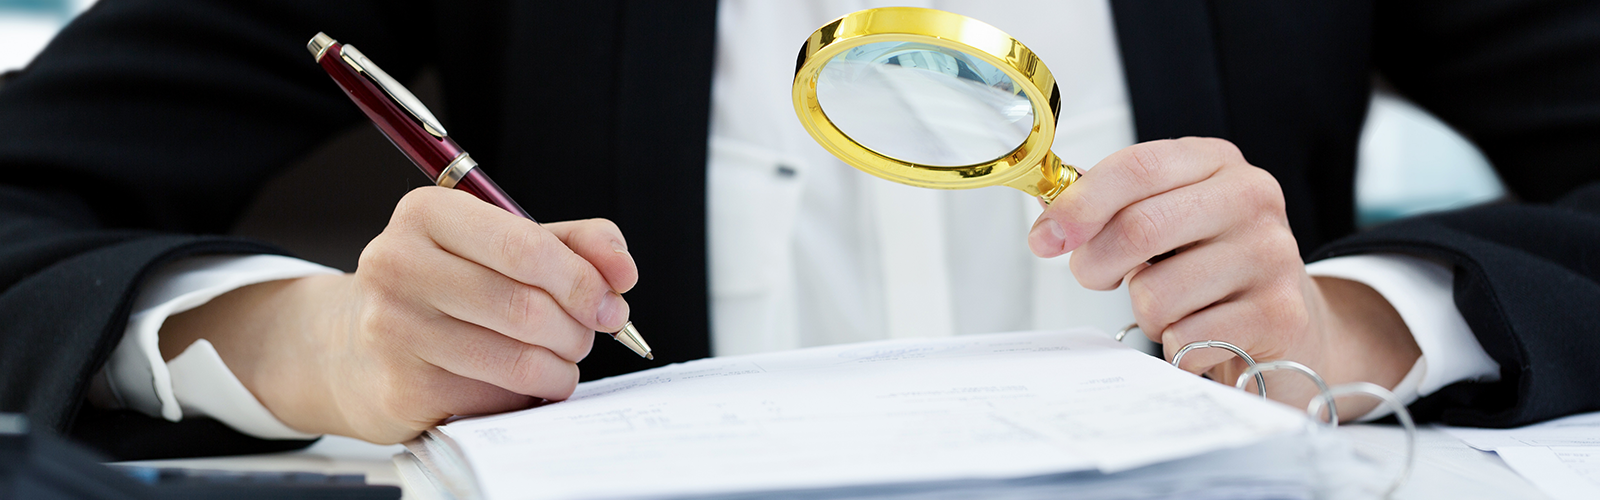 Compliance – What To Look For